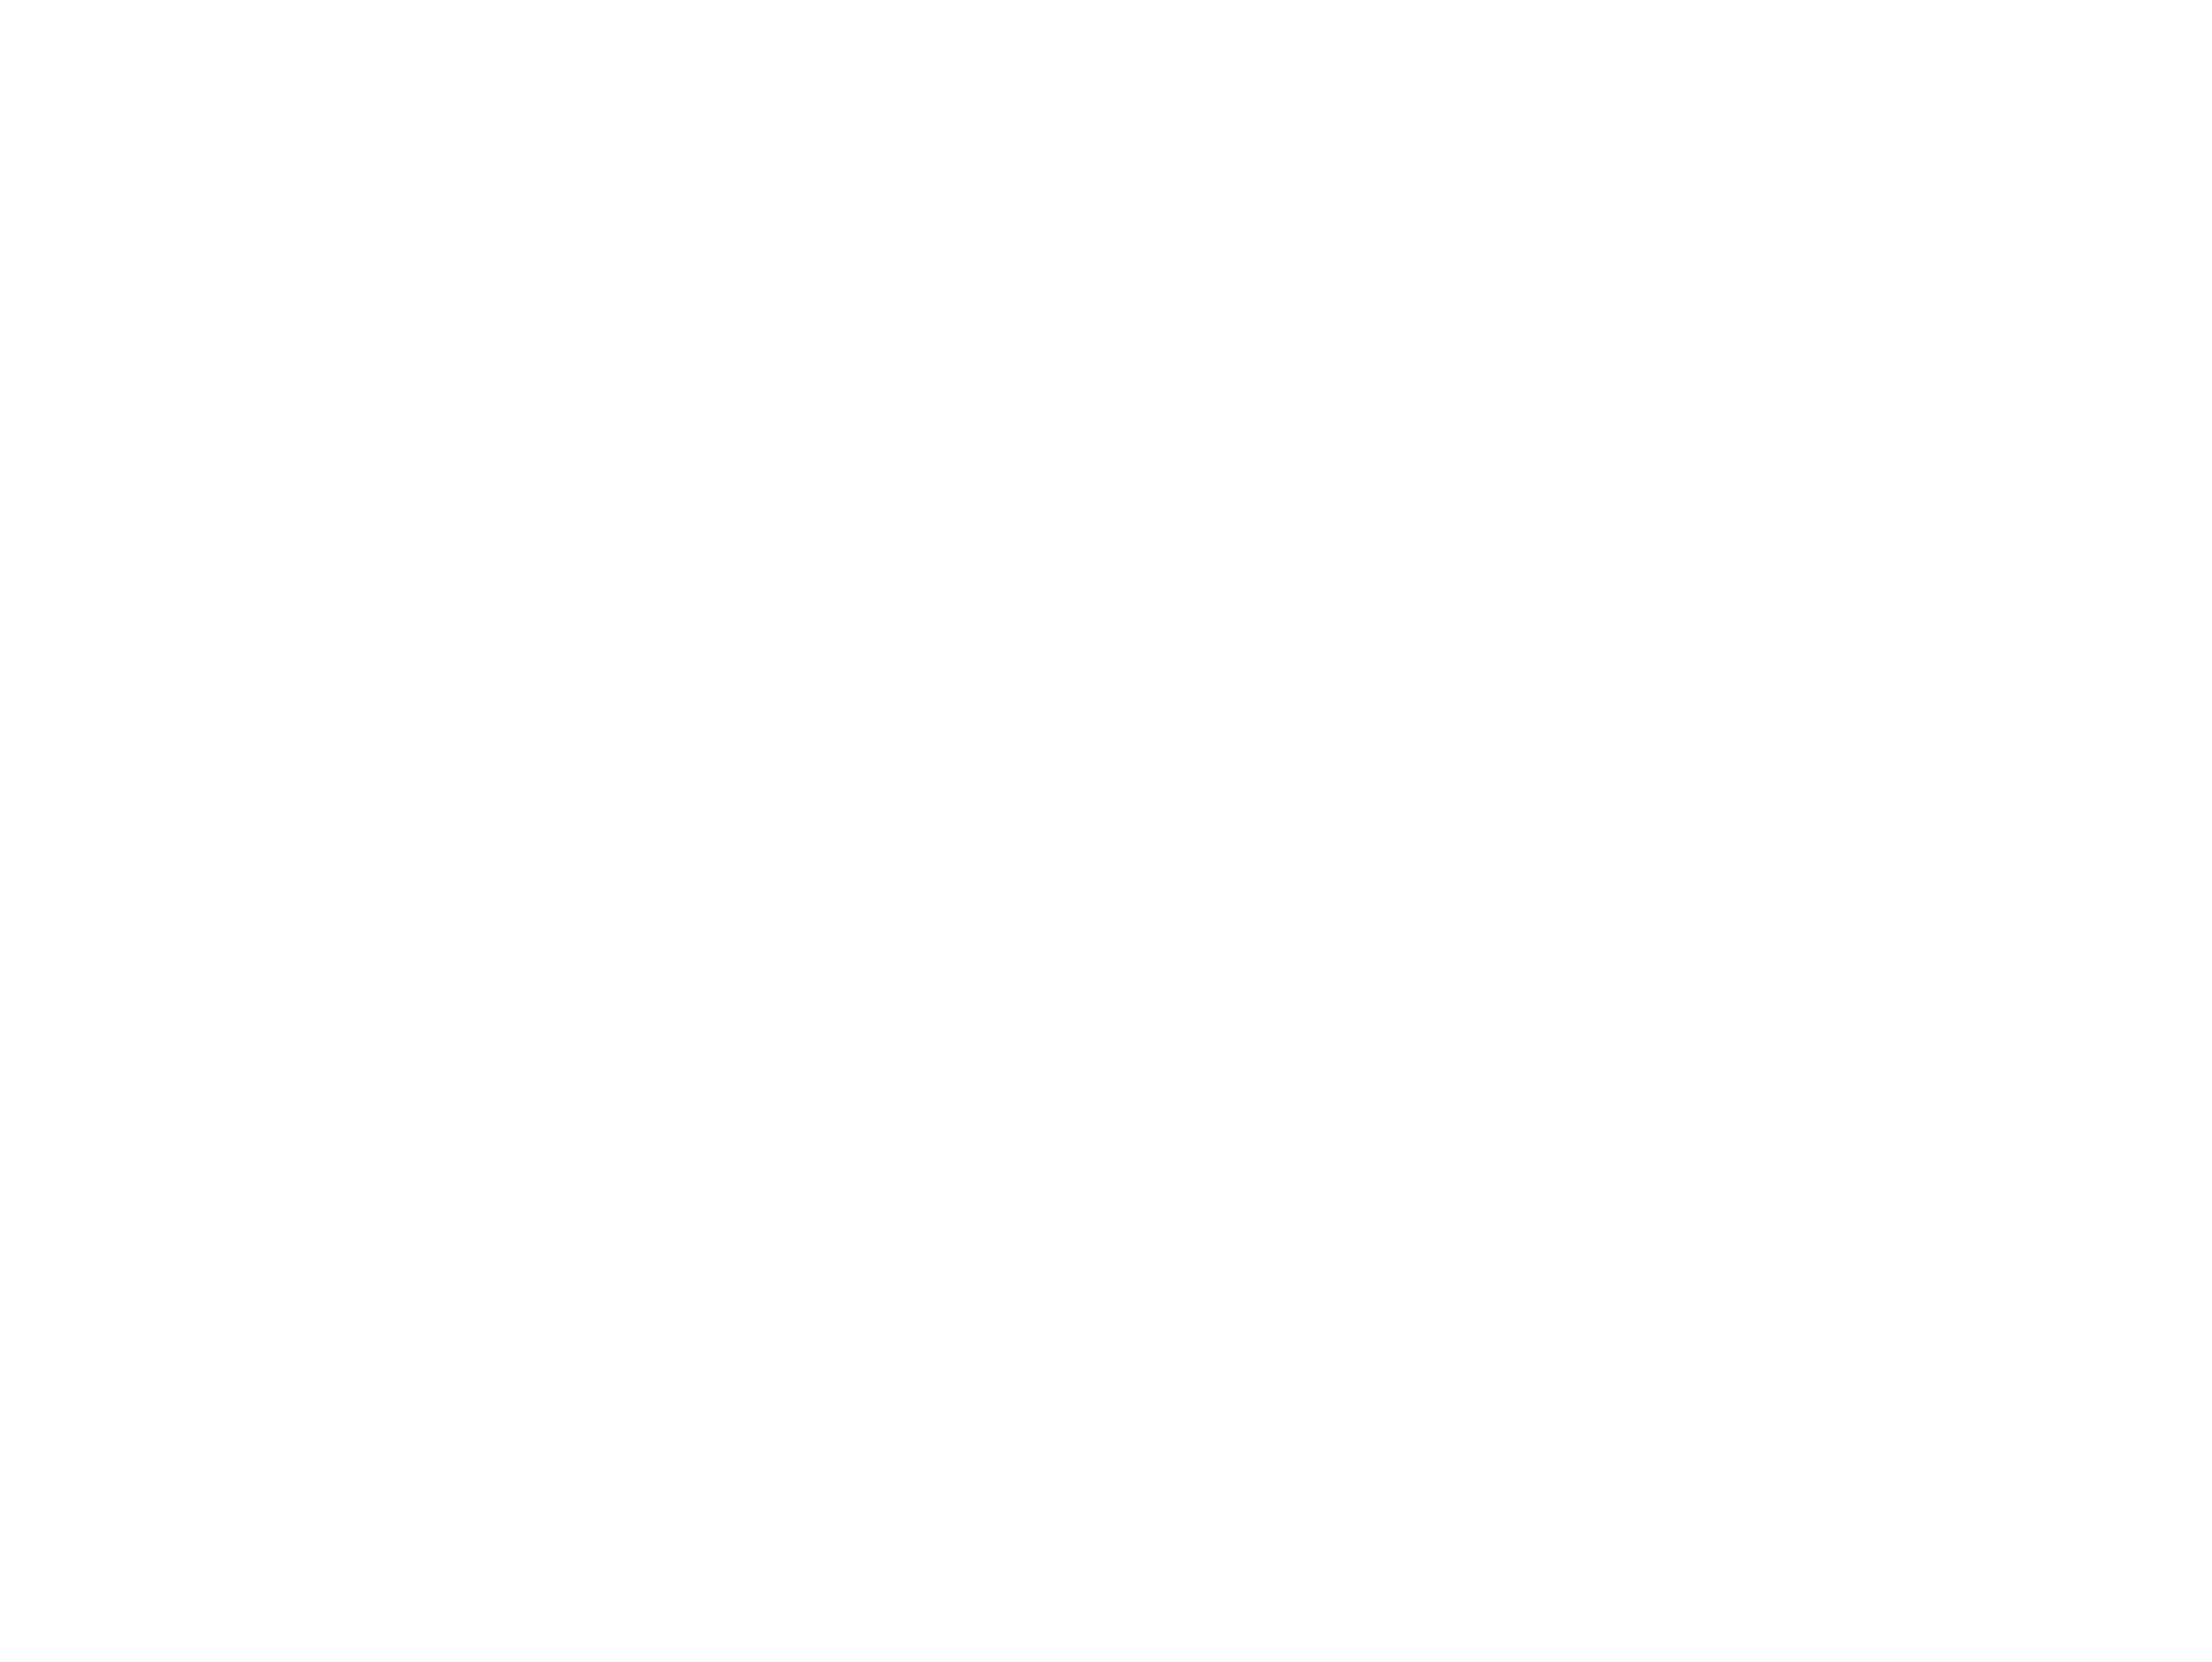 Bistro Selle